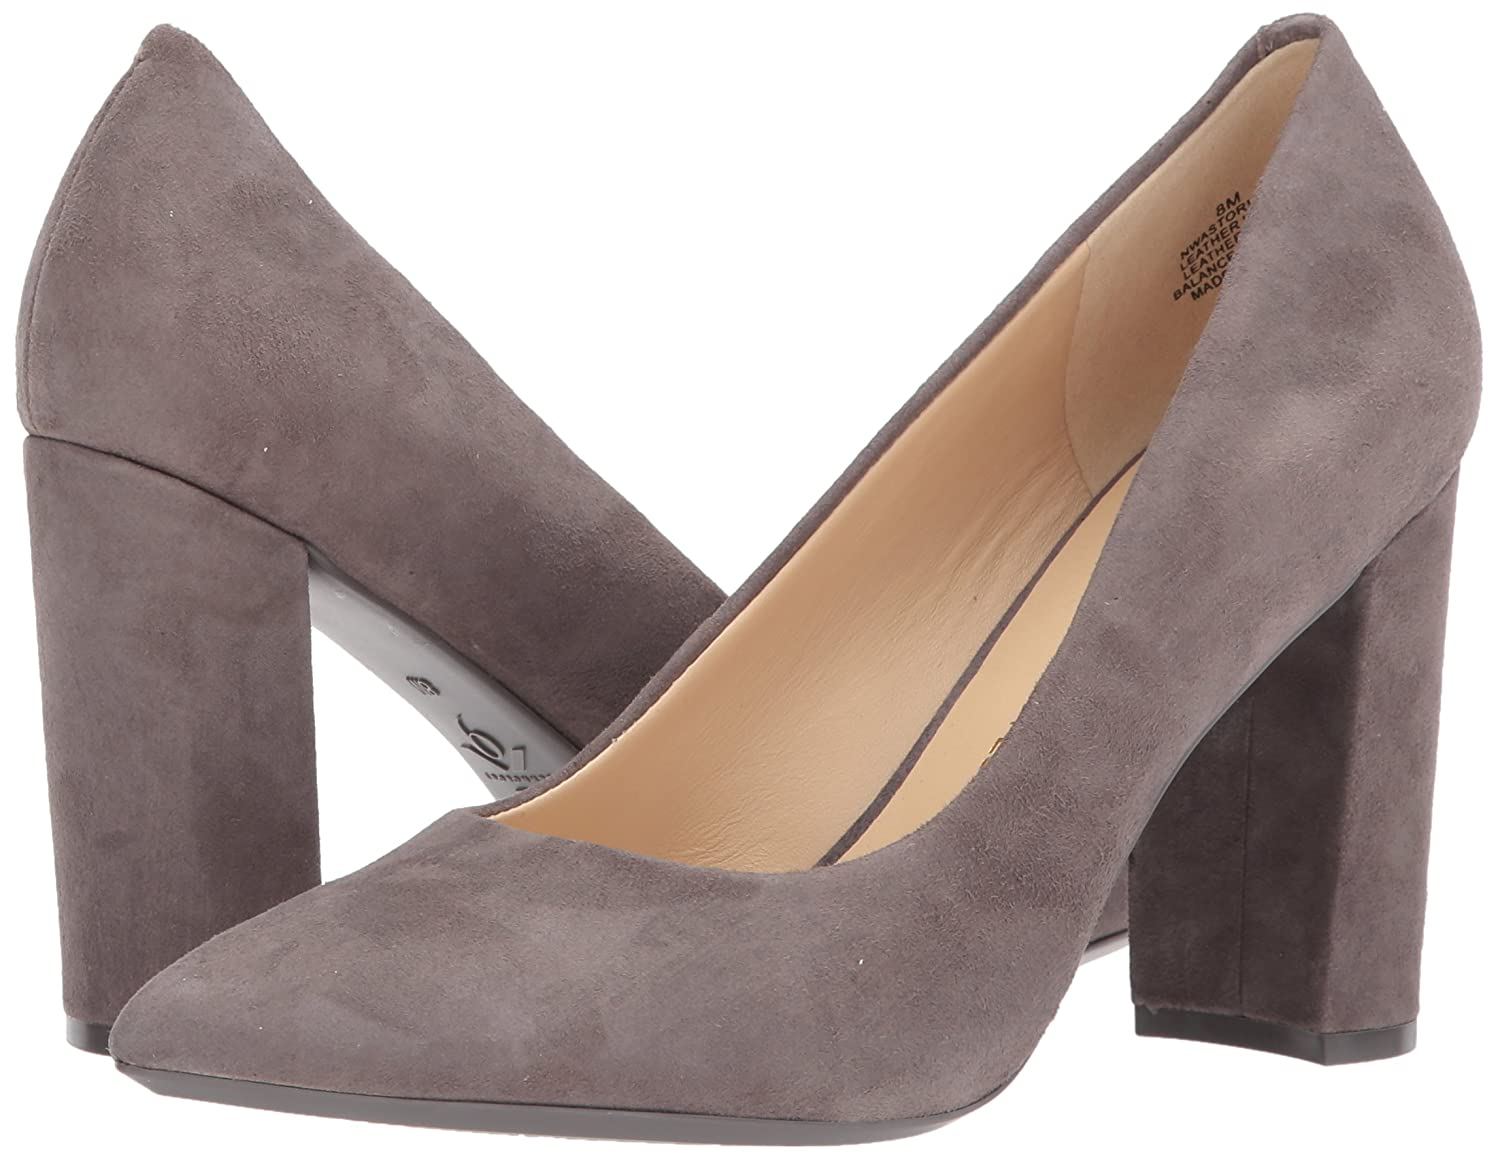 Nine West Women's Astoria Pump B06WP55PW1 5 B(M) US|Dark Grey Suede